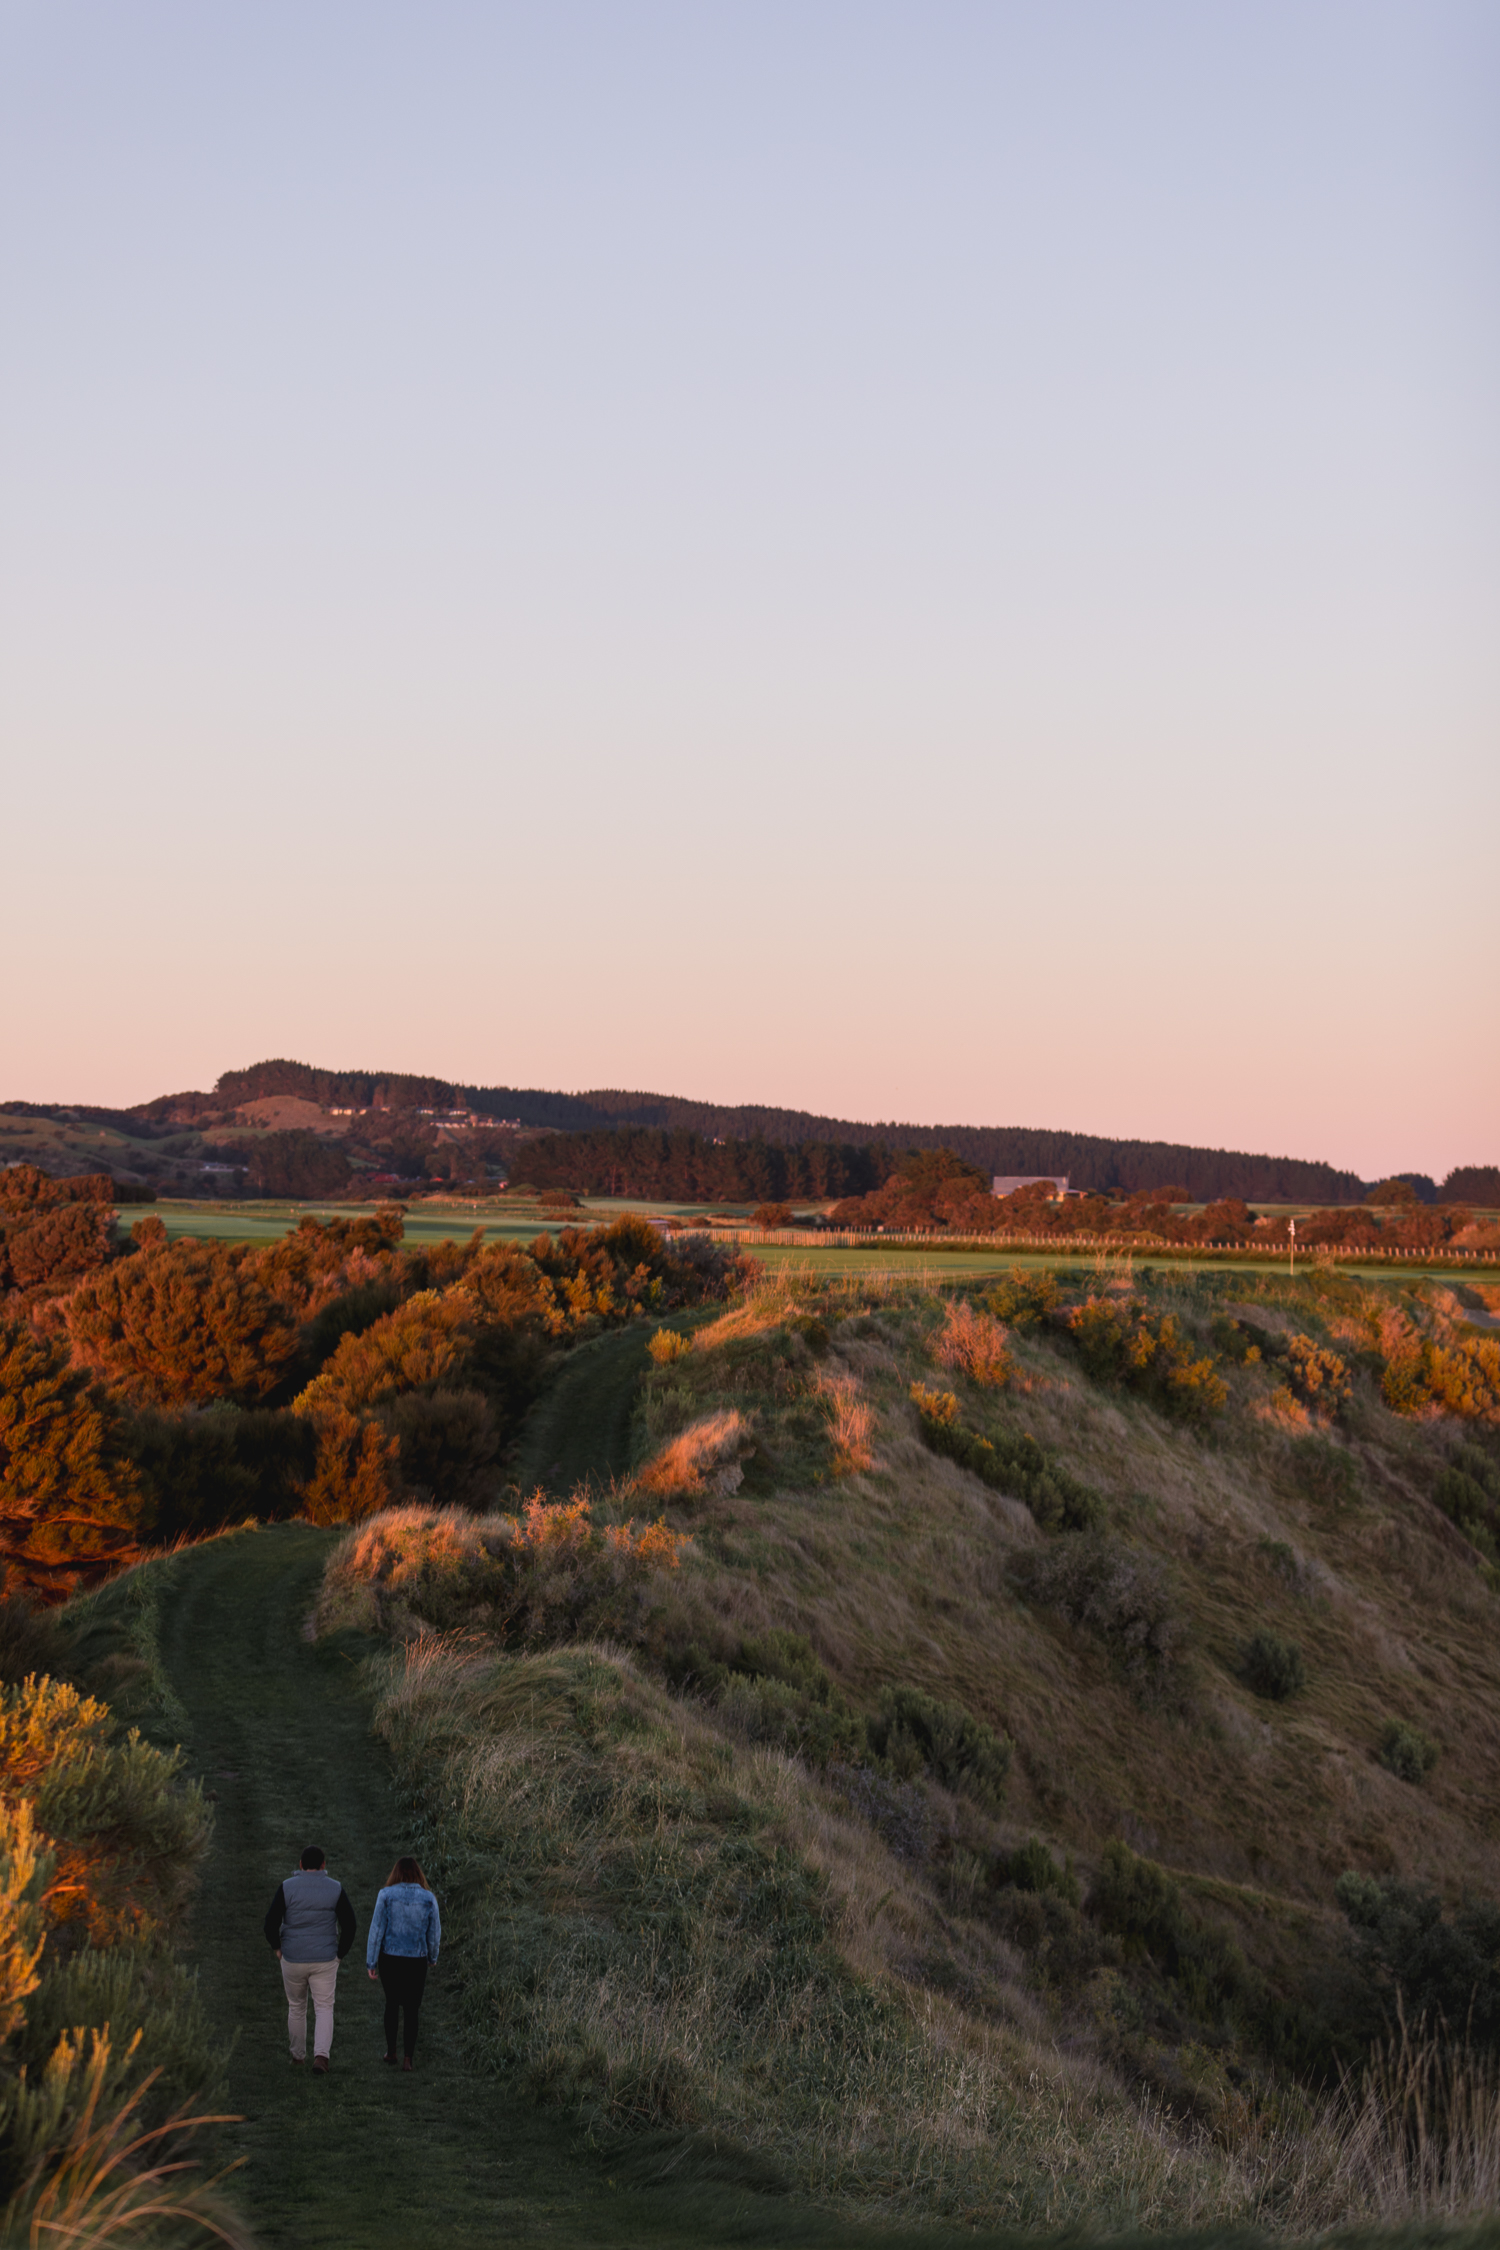 cape-kidnappers-golf-course-at-sunrise-hawkes-bay-looking-over-farm.jpg